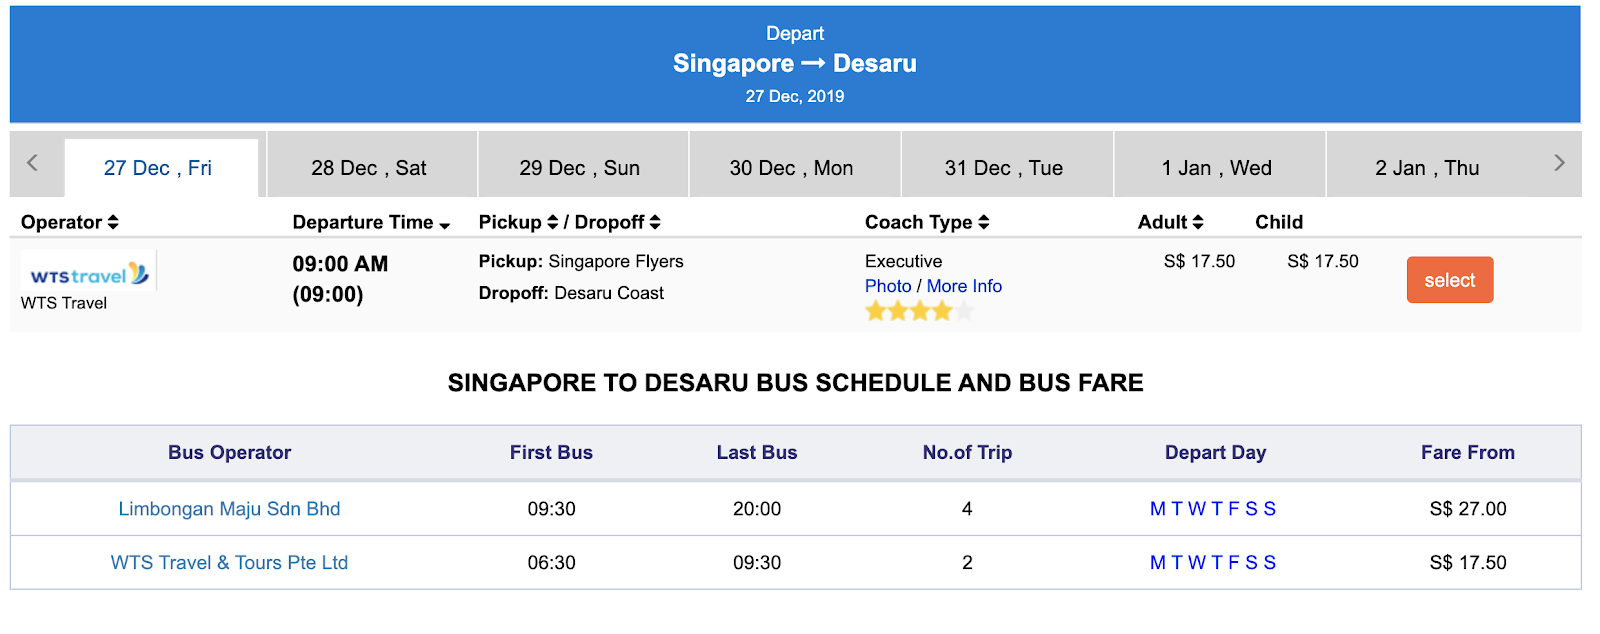 Getting from Singapore to Desaru by bus